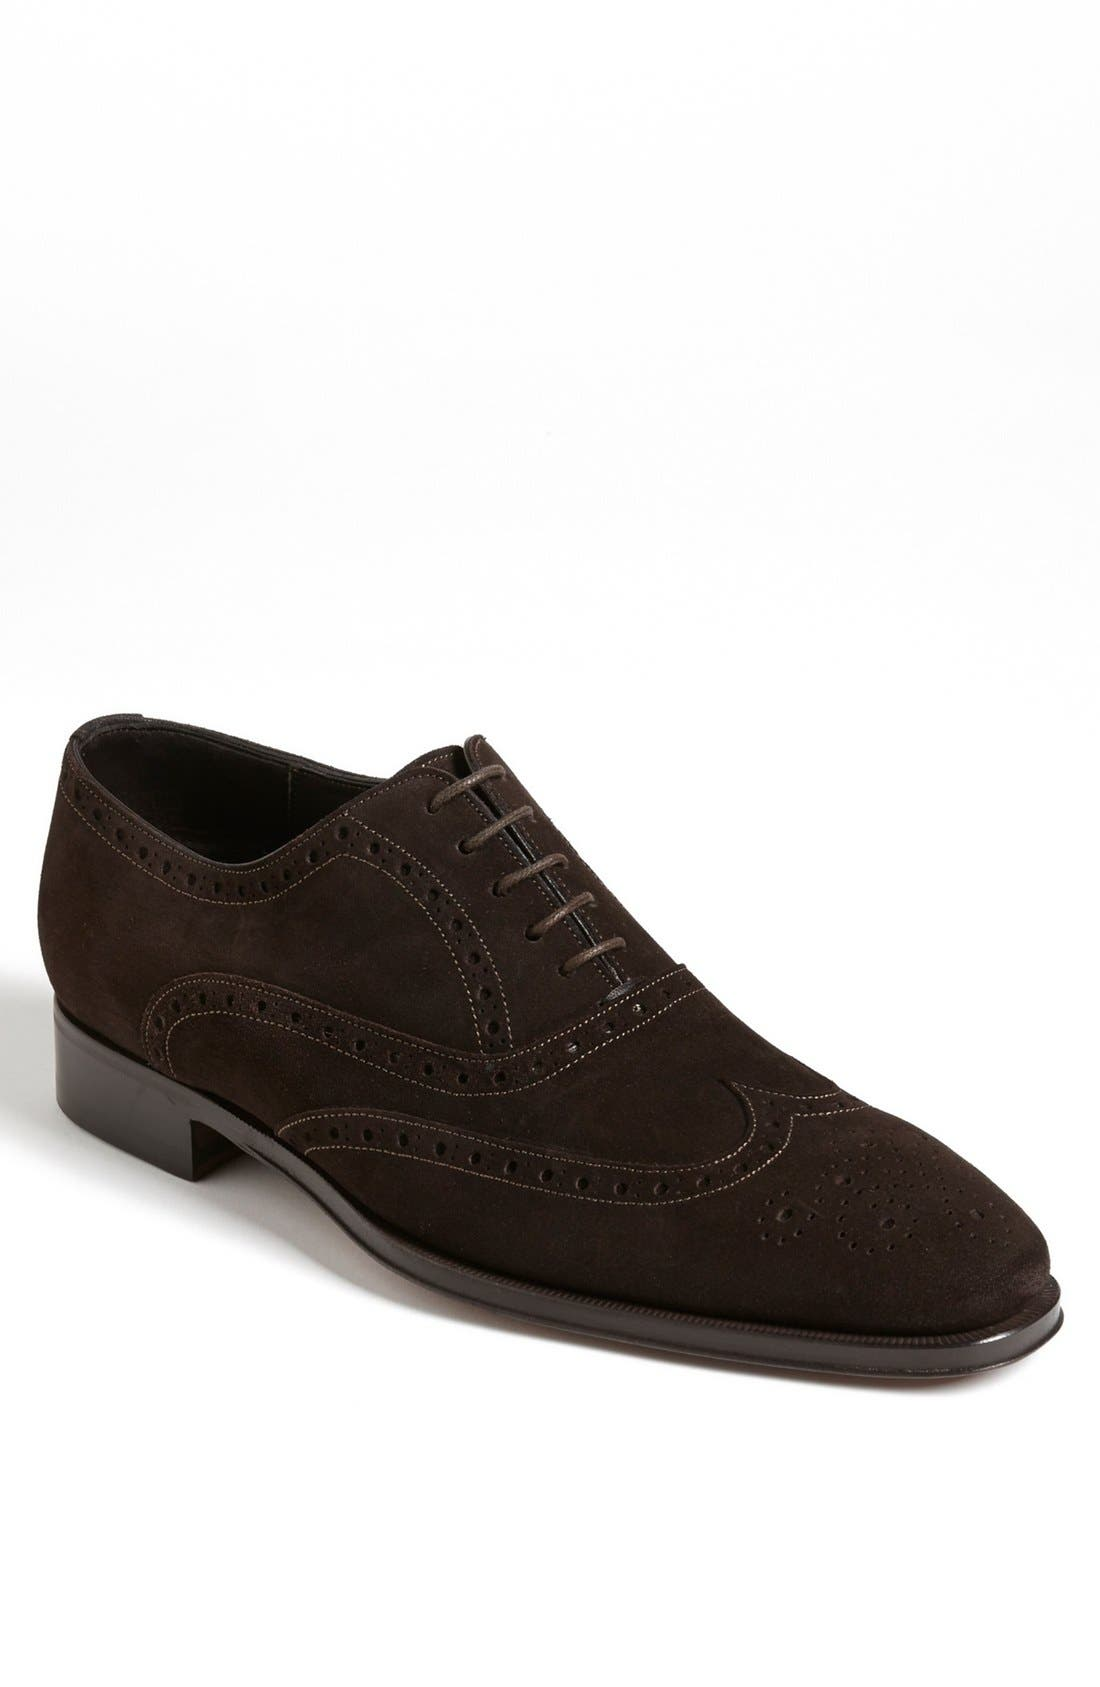 Alternate Image 1 Selected - Canali Suede Wingtip (Men)